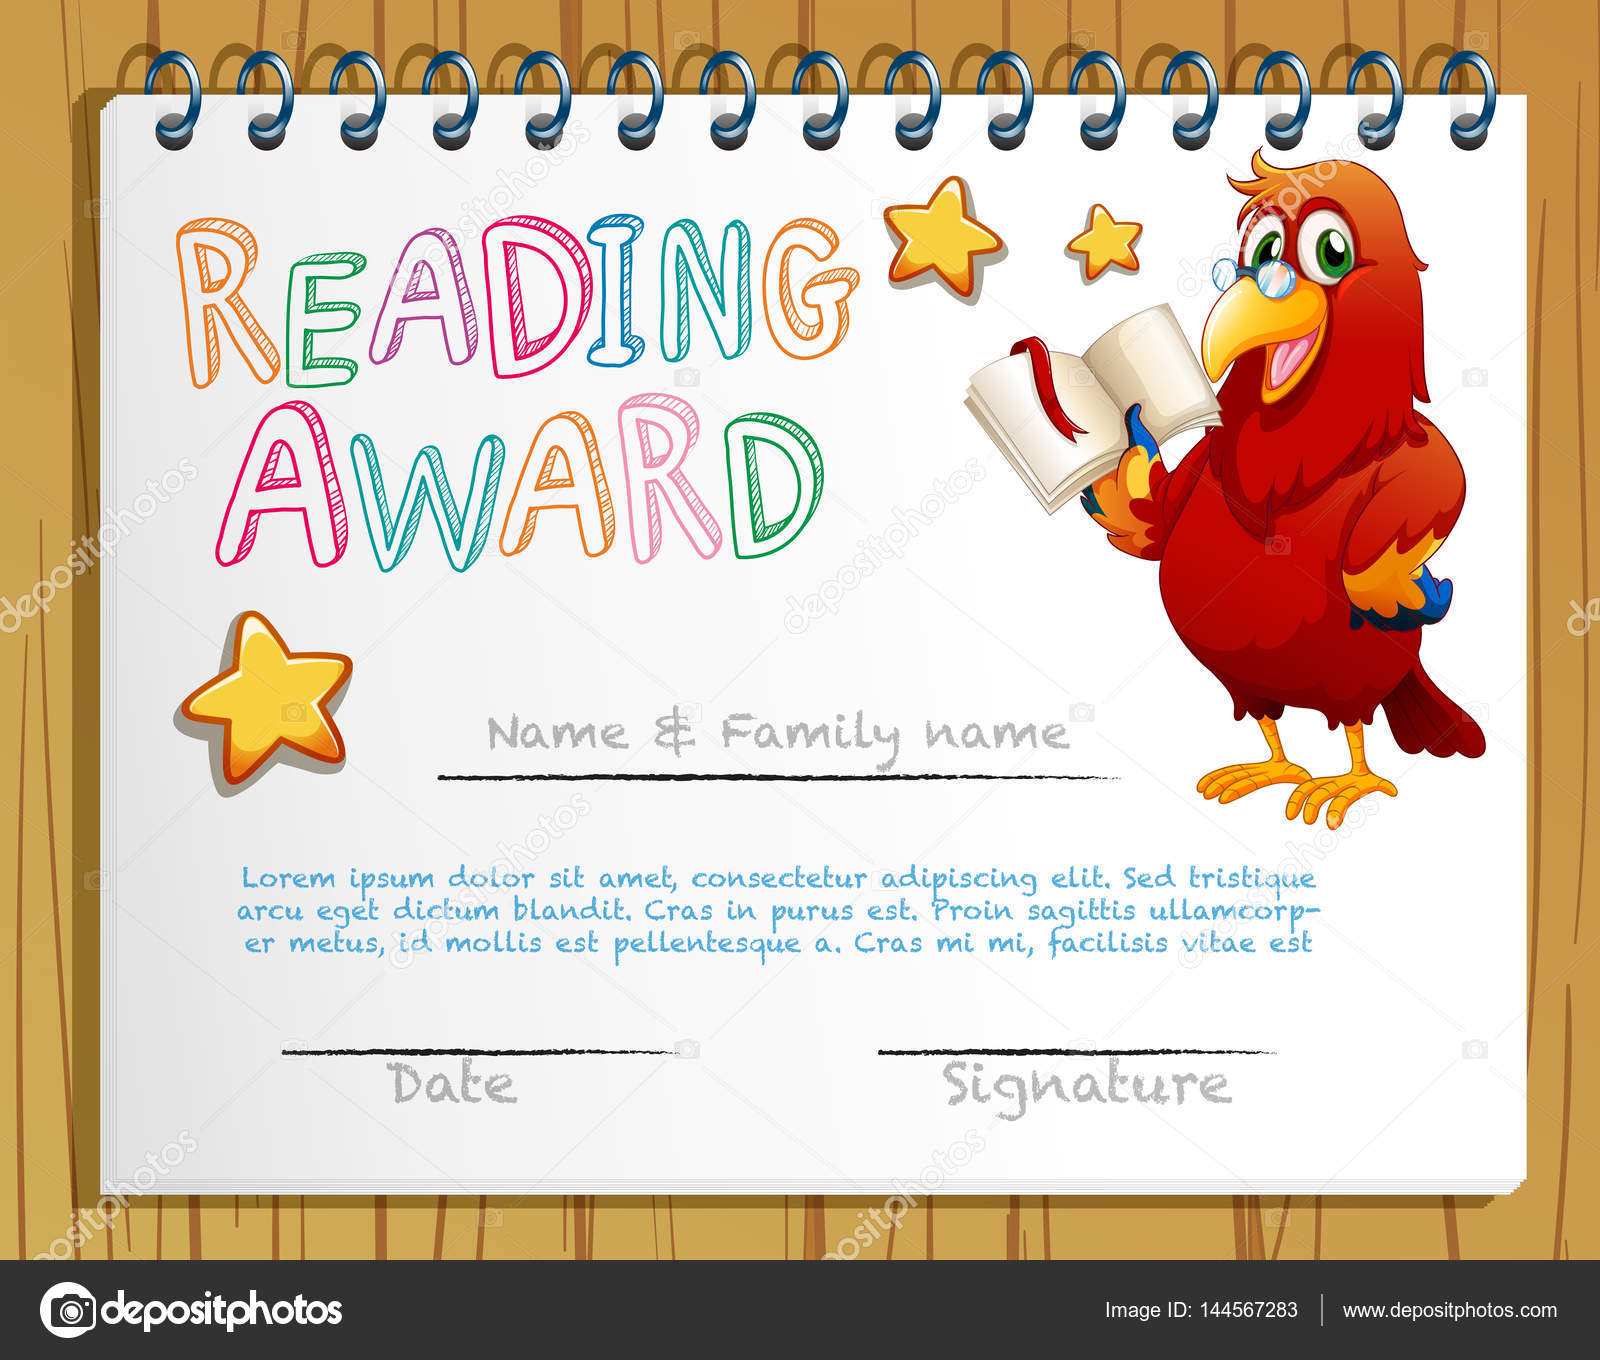 Certificate template for reading award stock vector certificate template for reading award illustration vector by interactimages yadclub Gallery